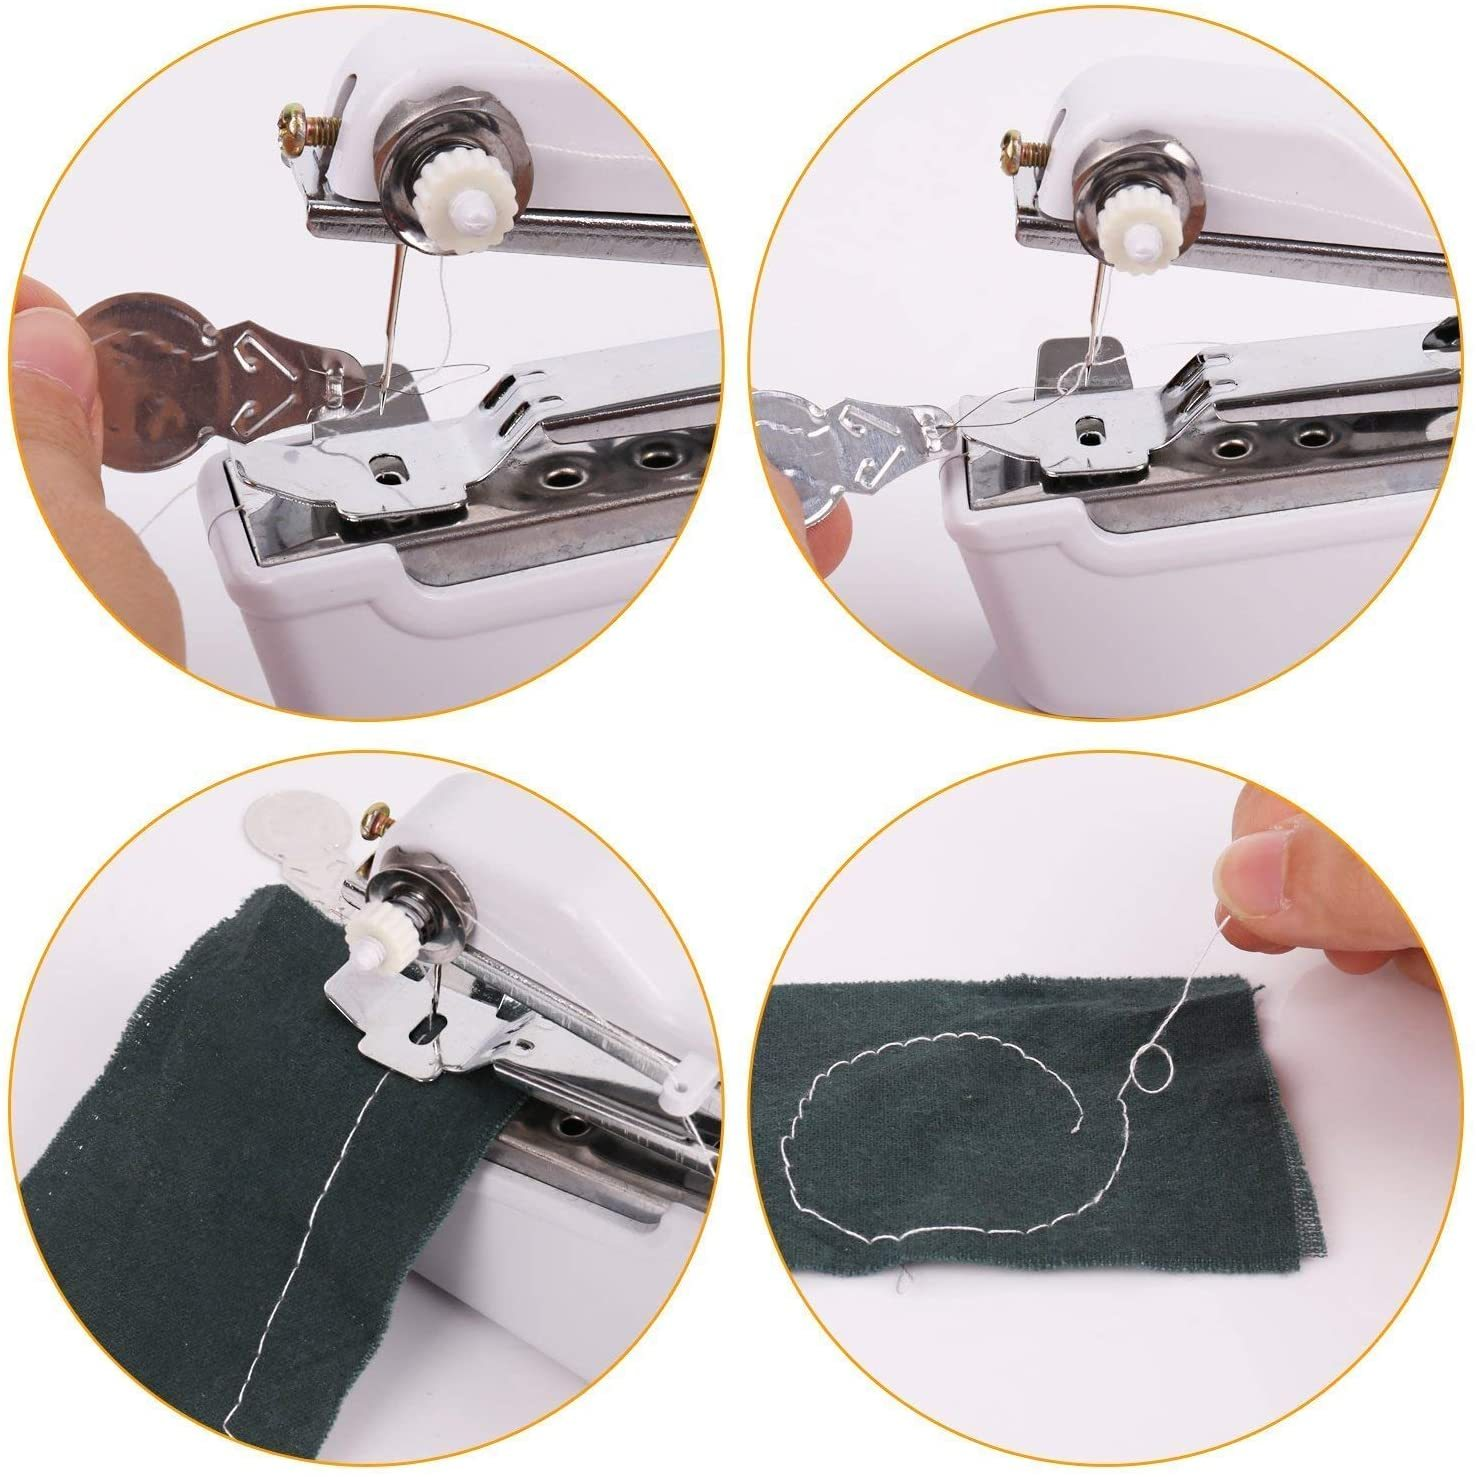 Handheld Sewing Machine(Buy 2 get FREE shipping)